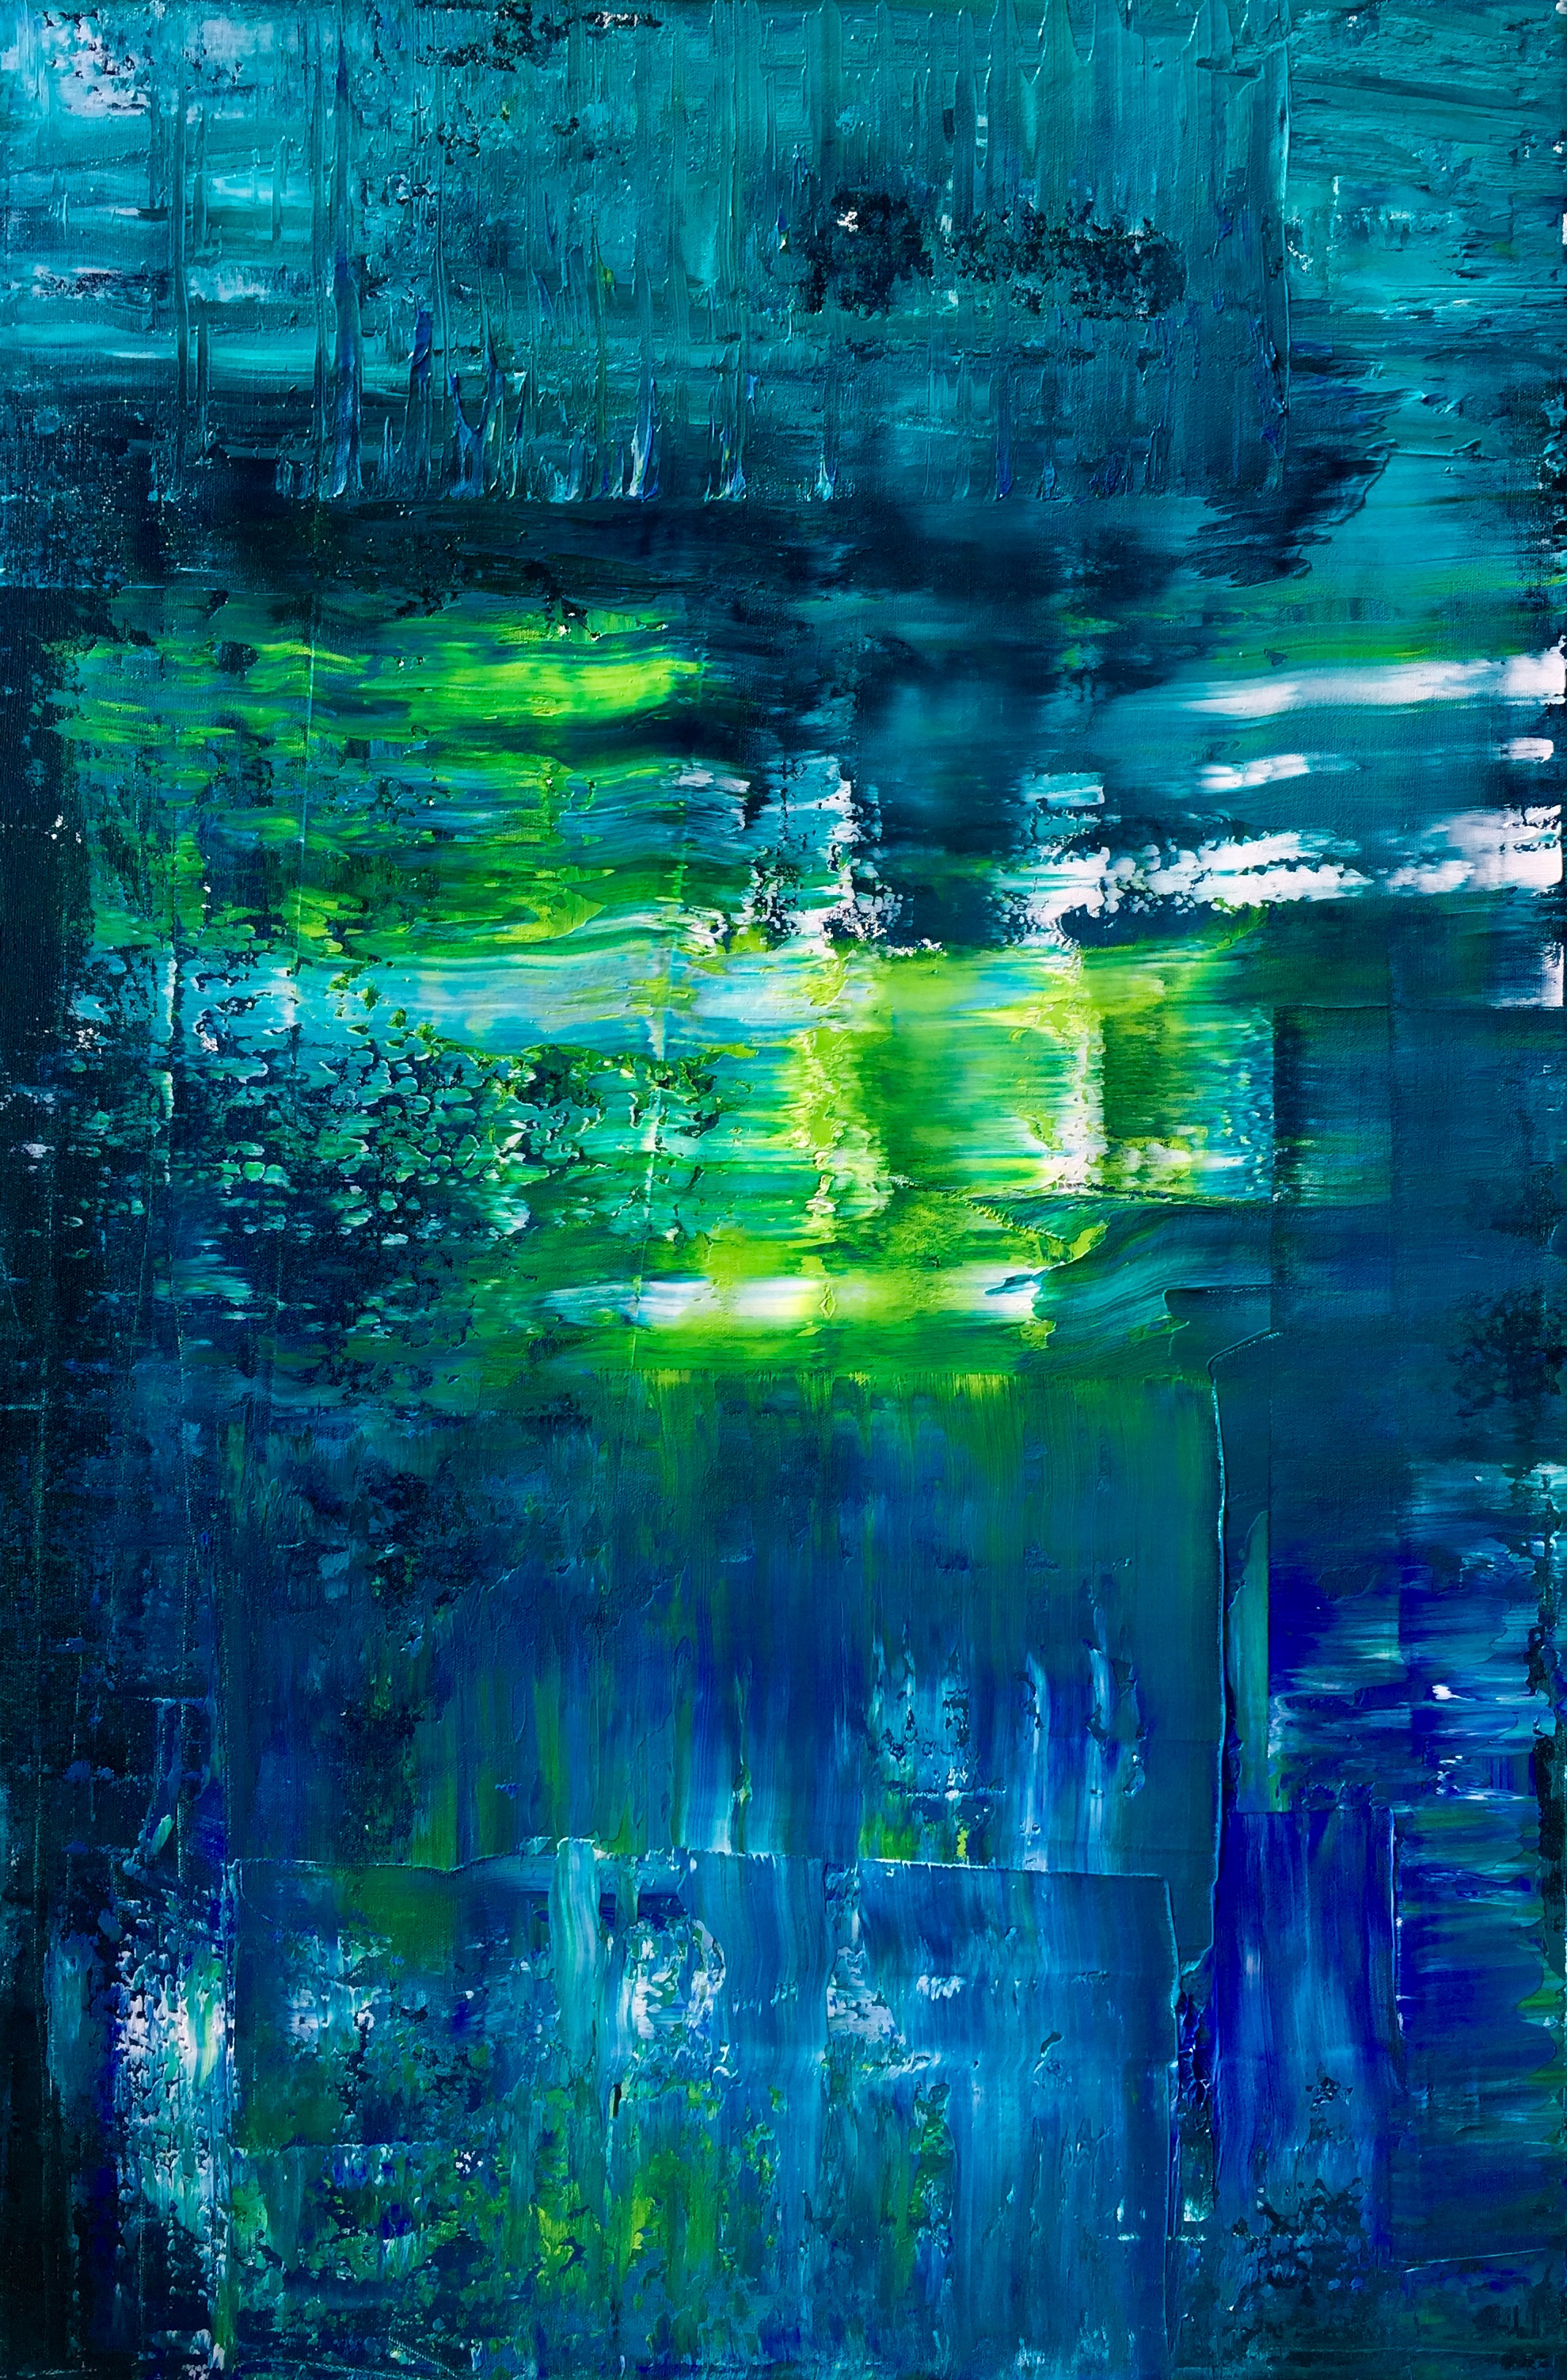 abstract painting of waters by Maria-Victoria Checa Art Gerhard Richter style